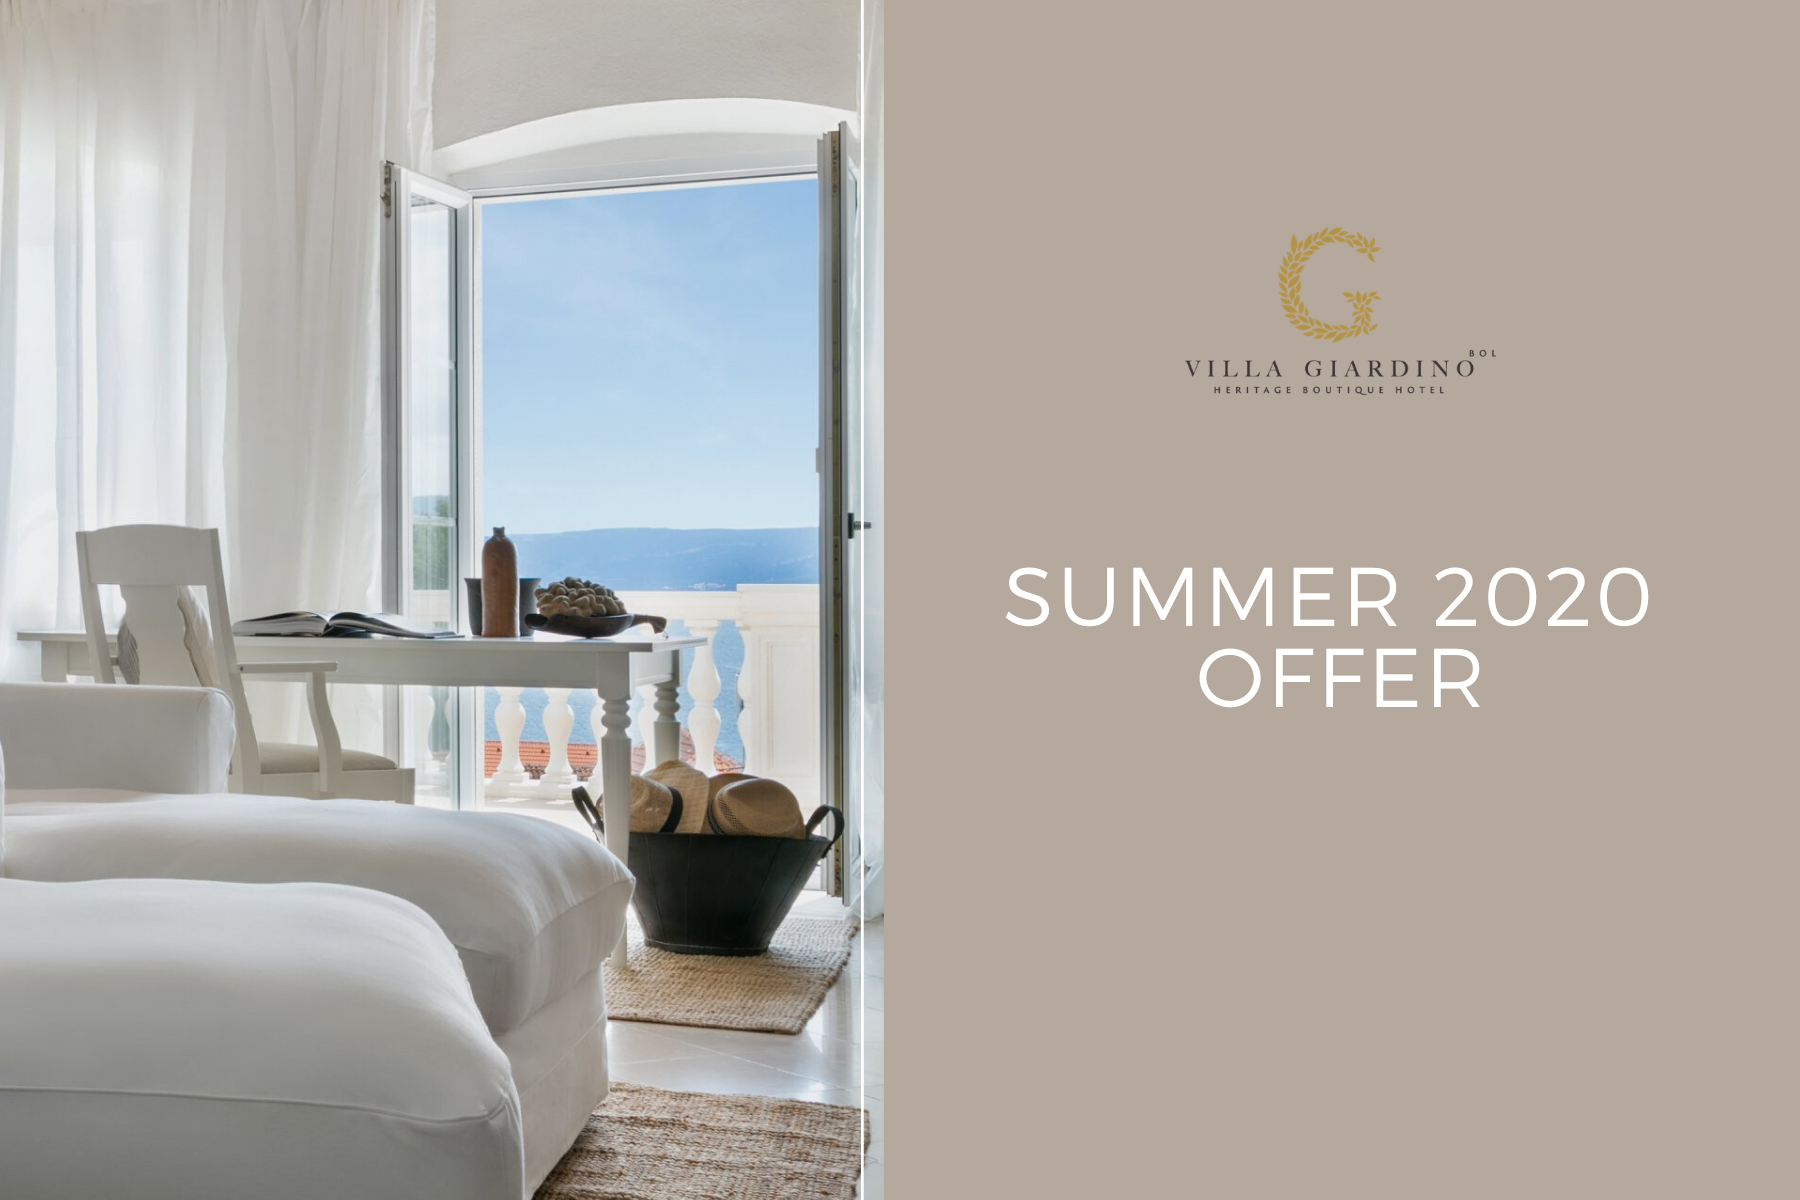 Special Summer Offer by Villa Giardino Heritage Boutique Hotel